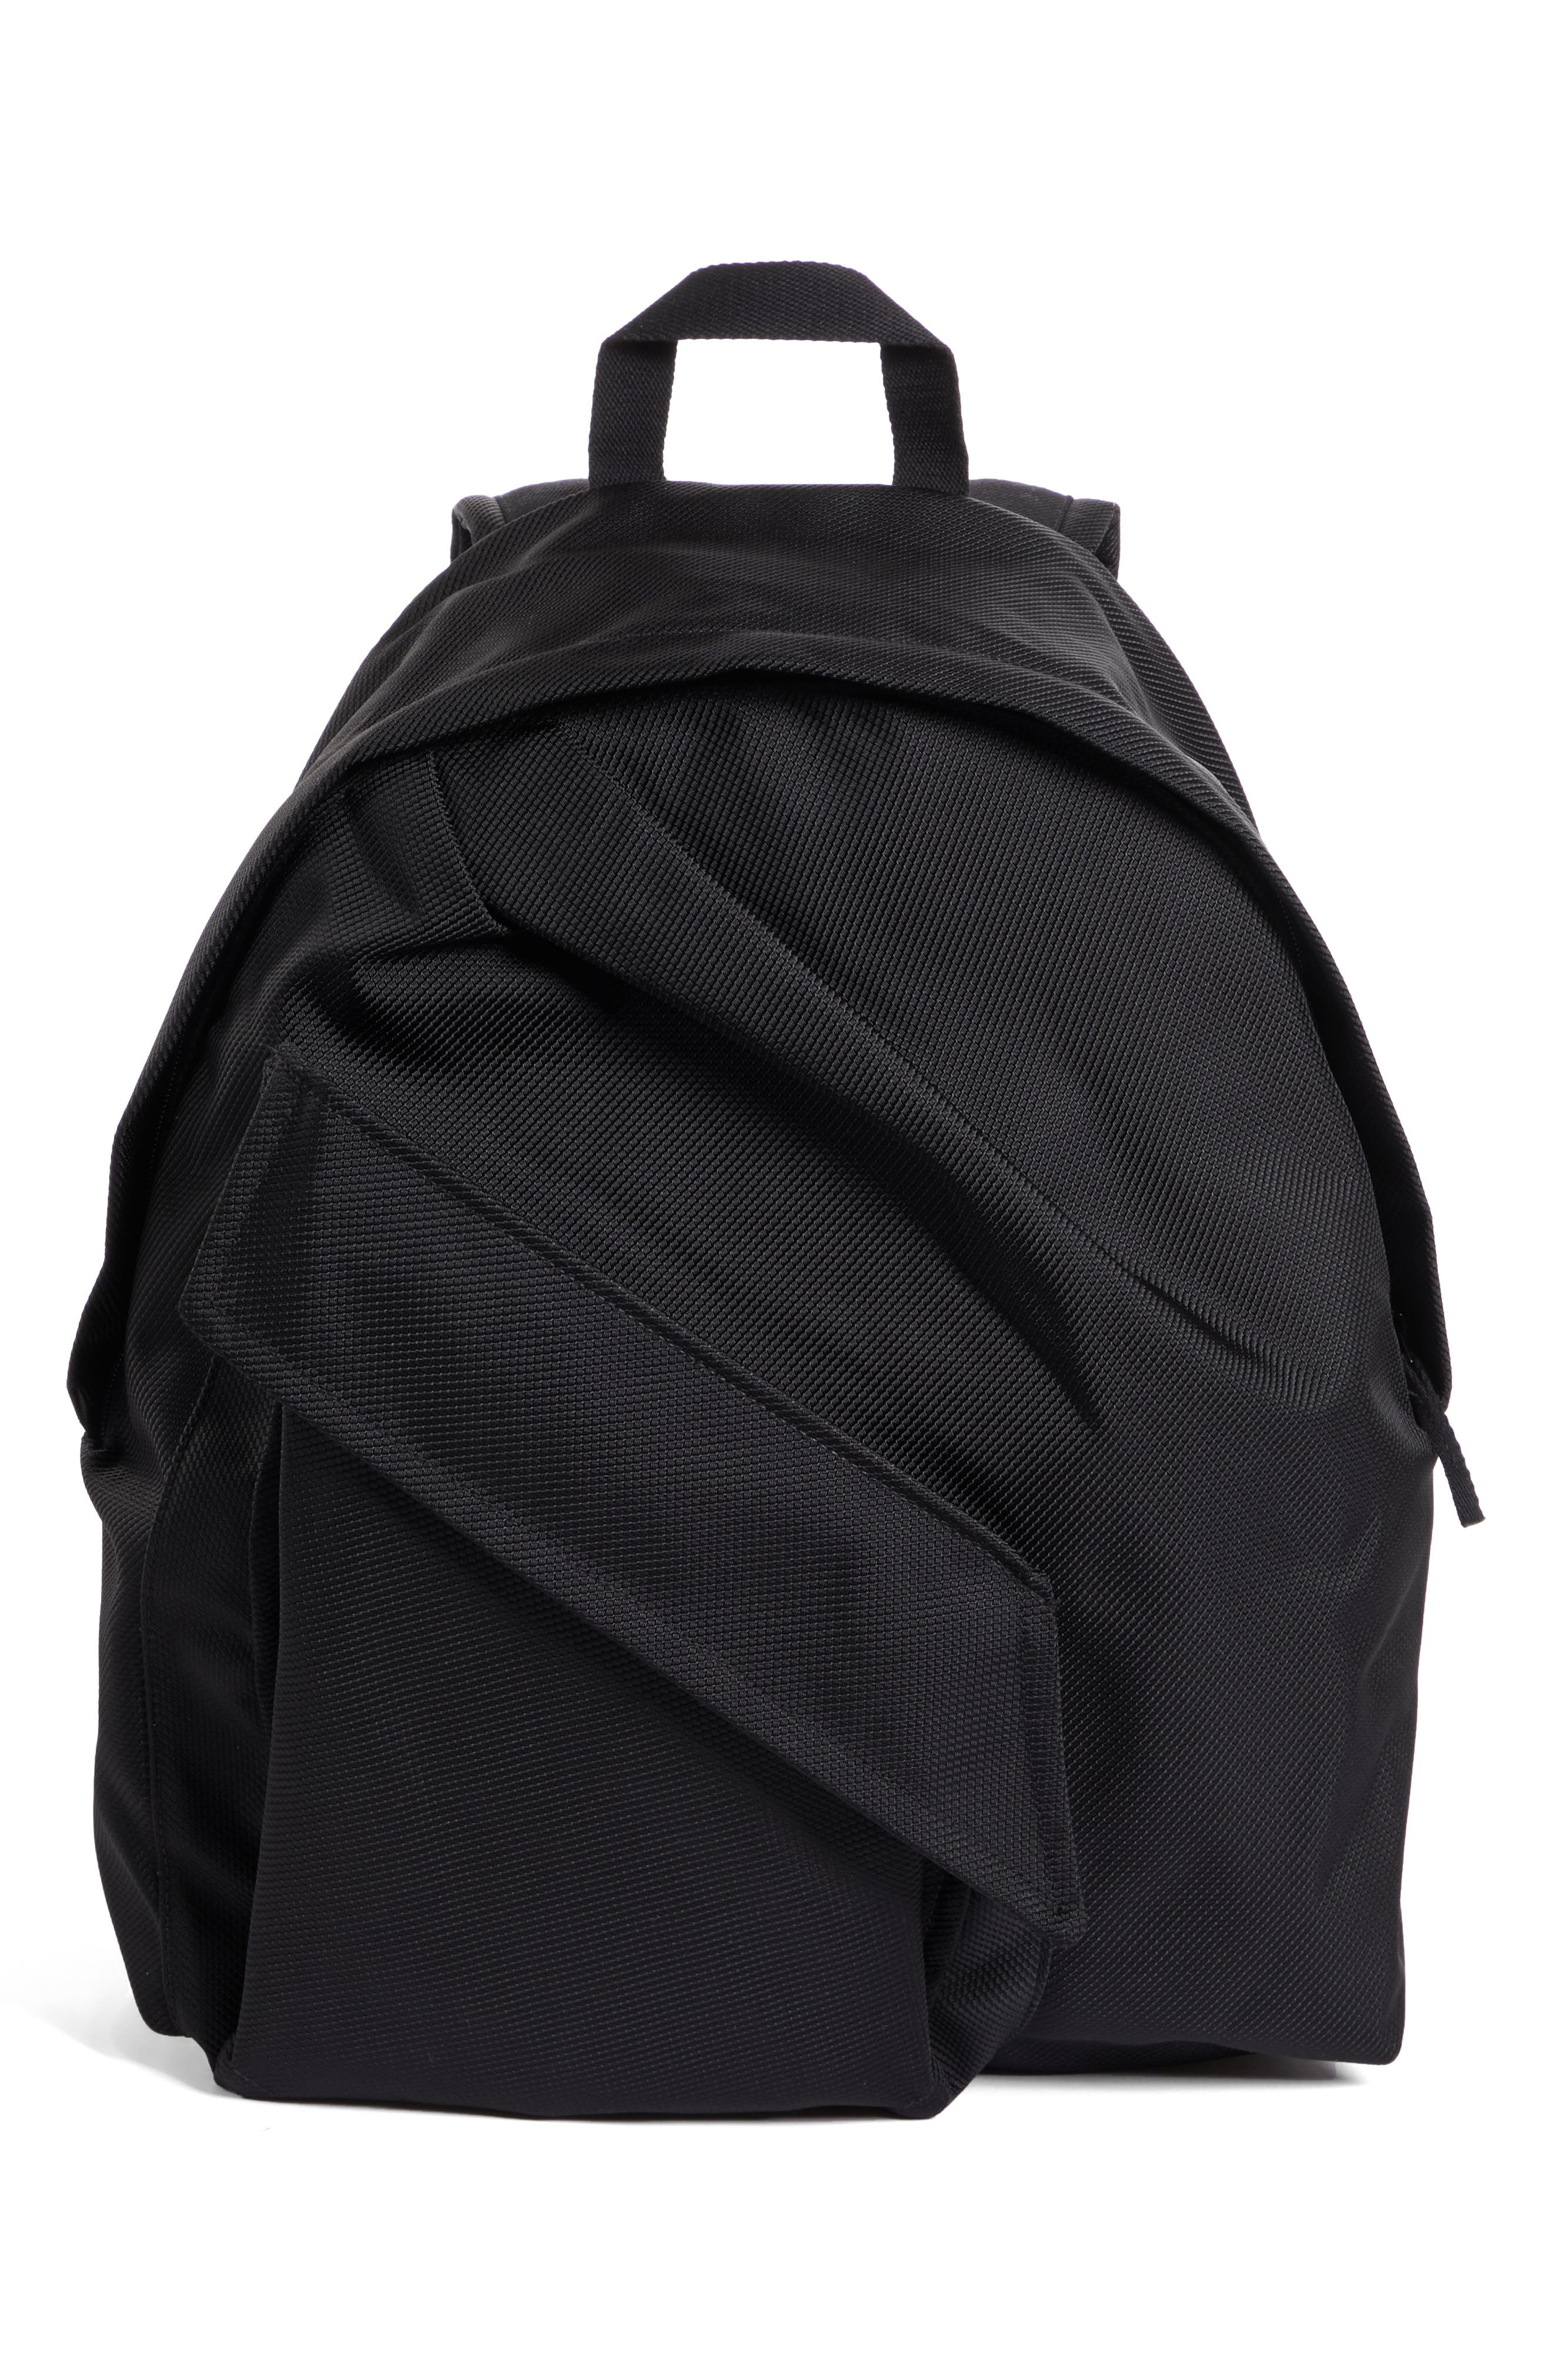 Eastpak x Raf Simons Classic Structured Backpack,                             Main thumbnail 1, color,                             001